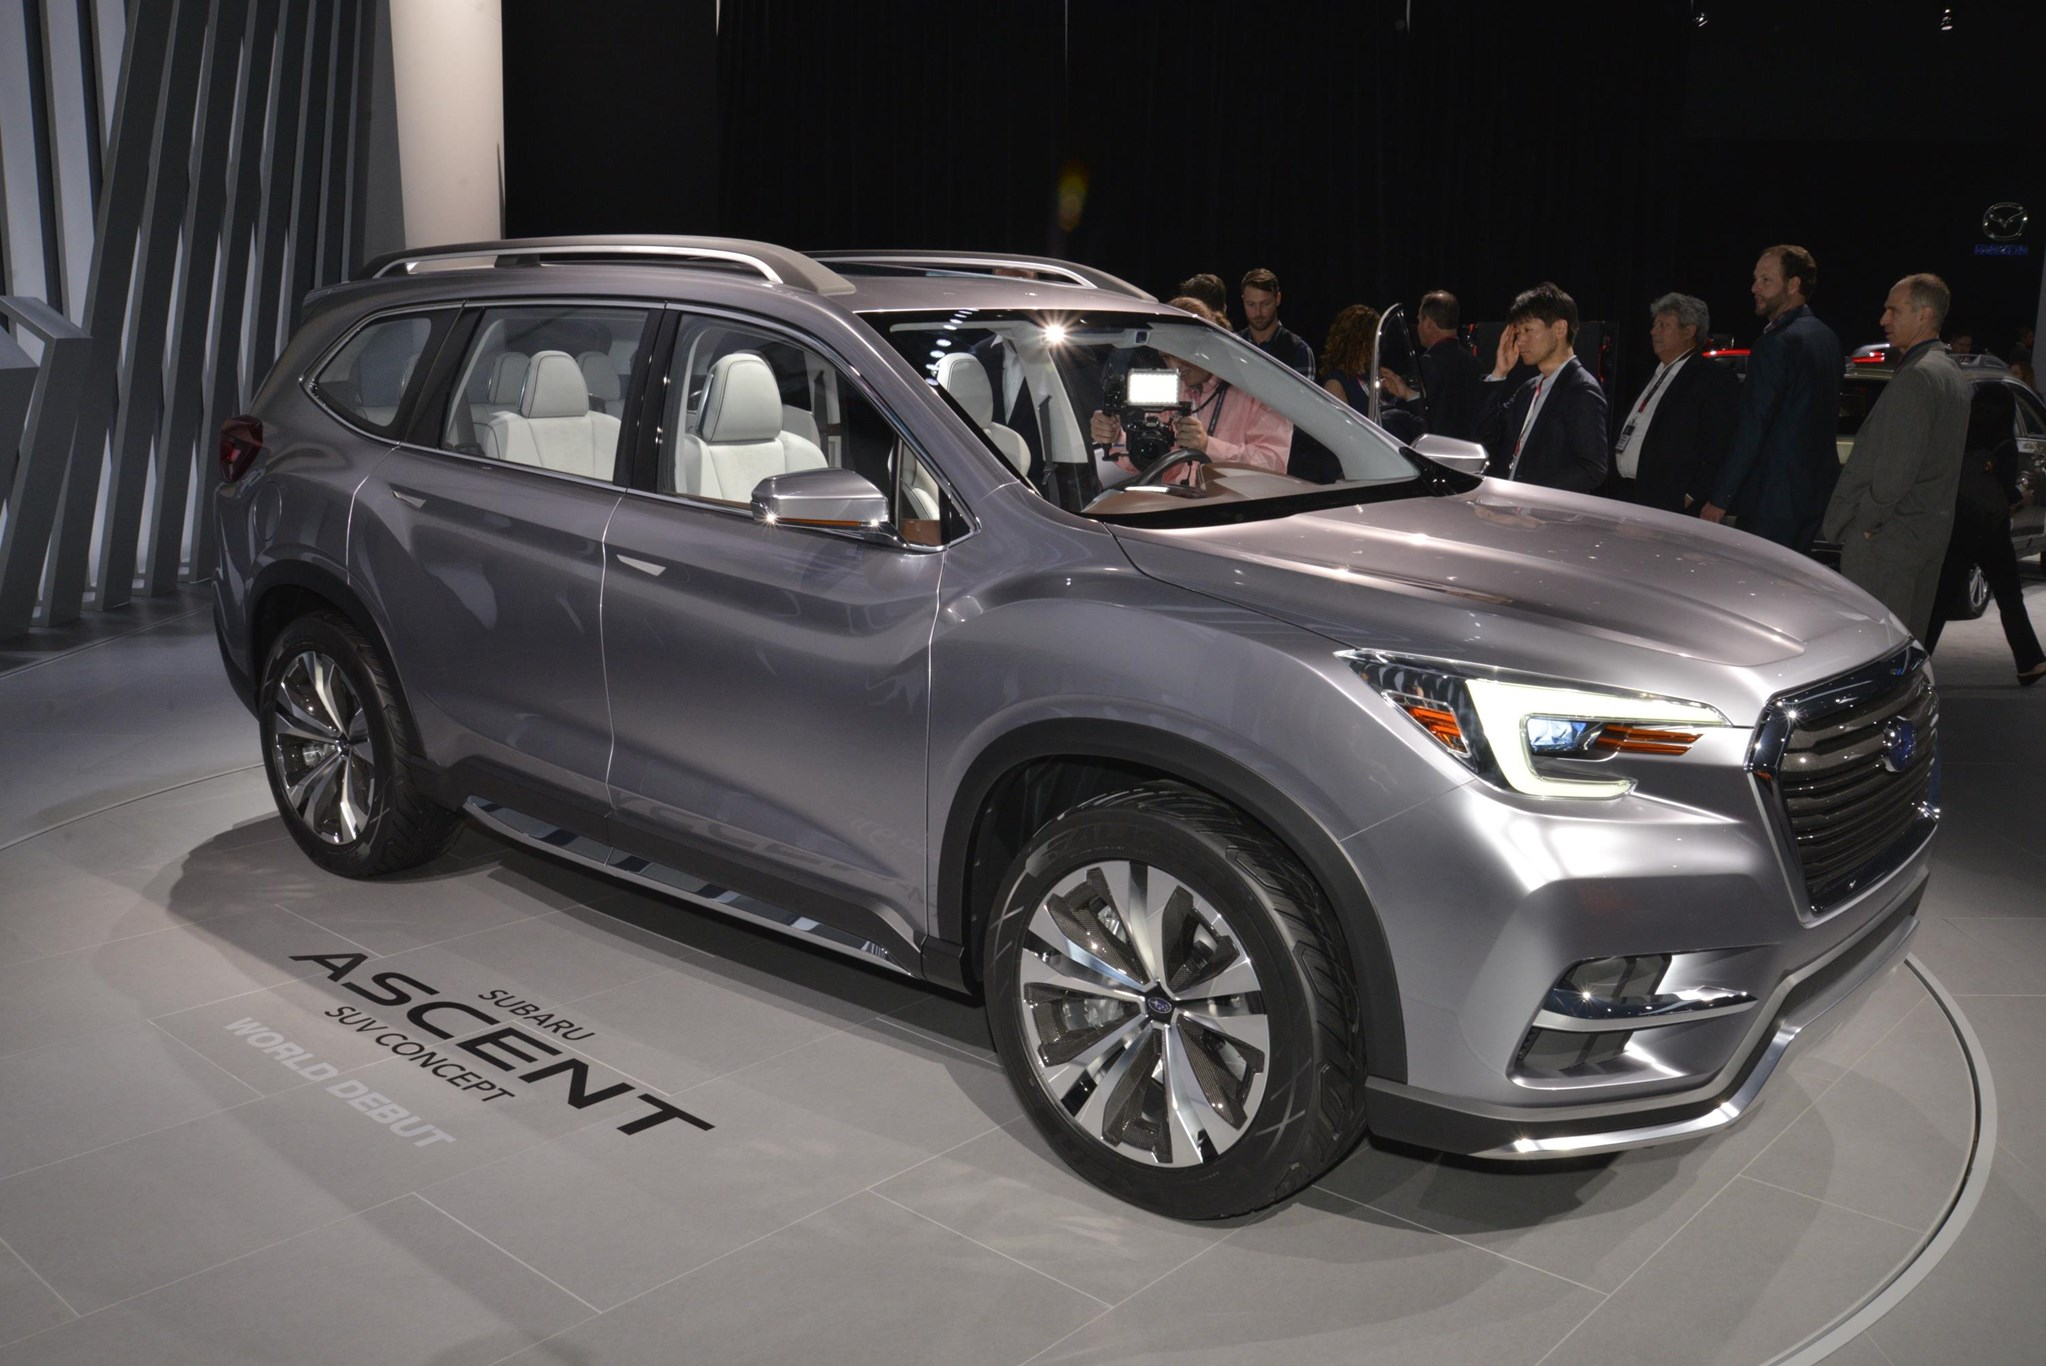 Nissan Pathfinder 2019 >> Subaru goes big in America with new Ascent SUV concept by CAR Magazine